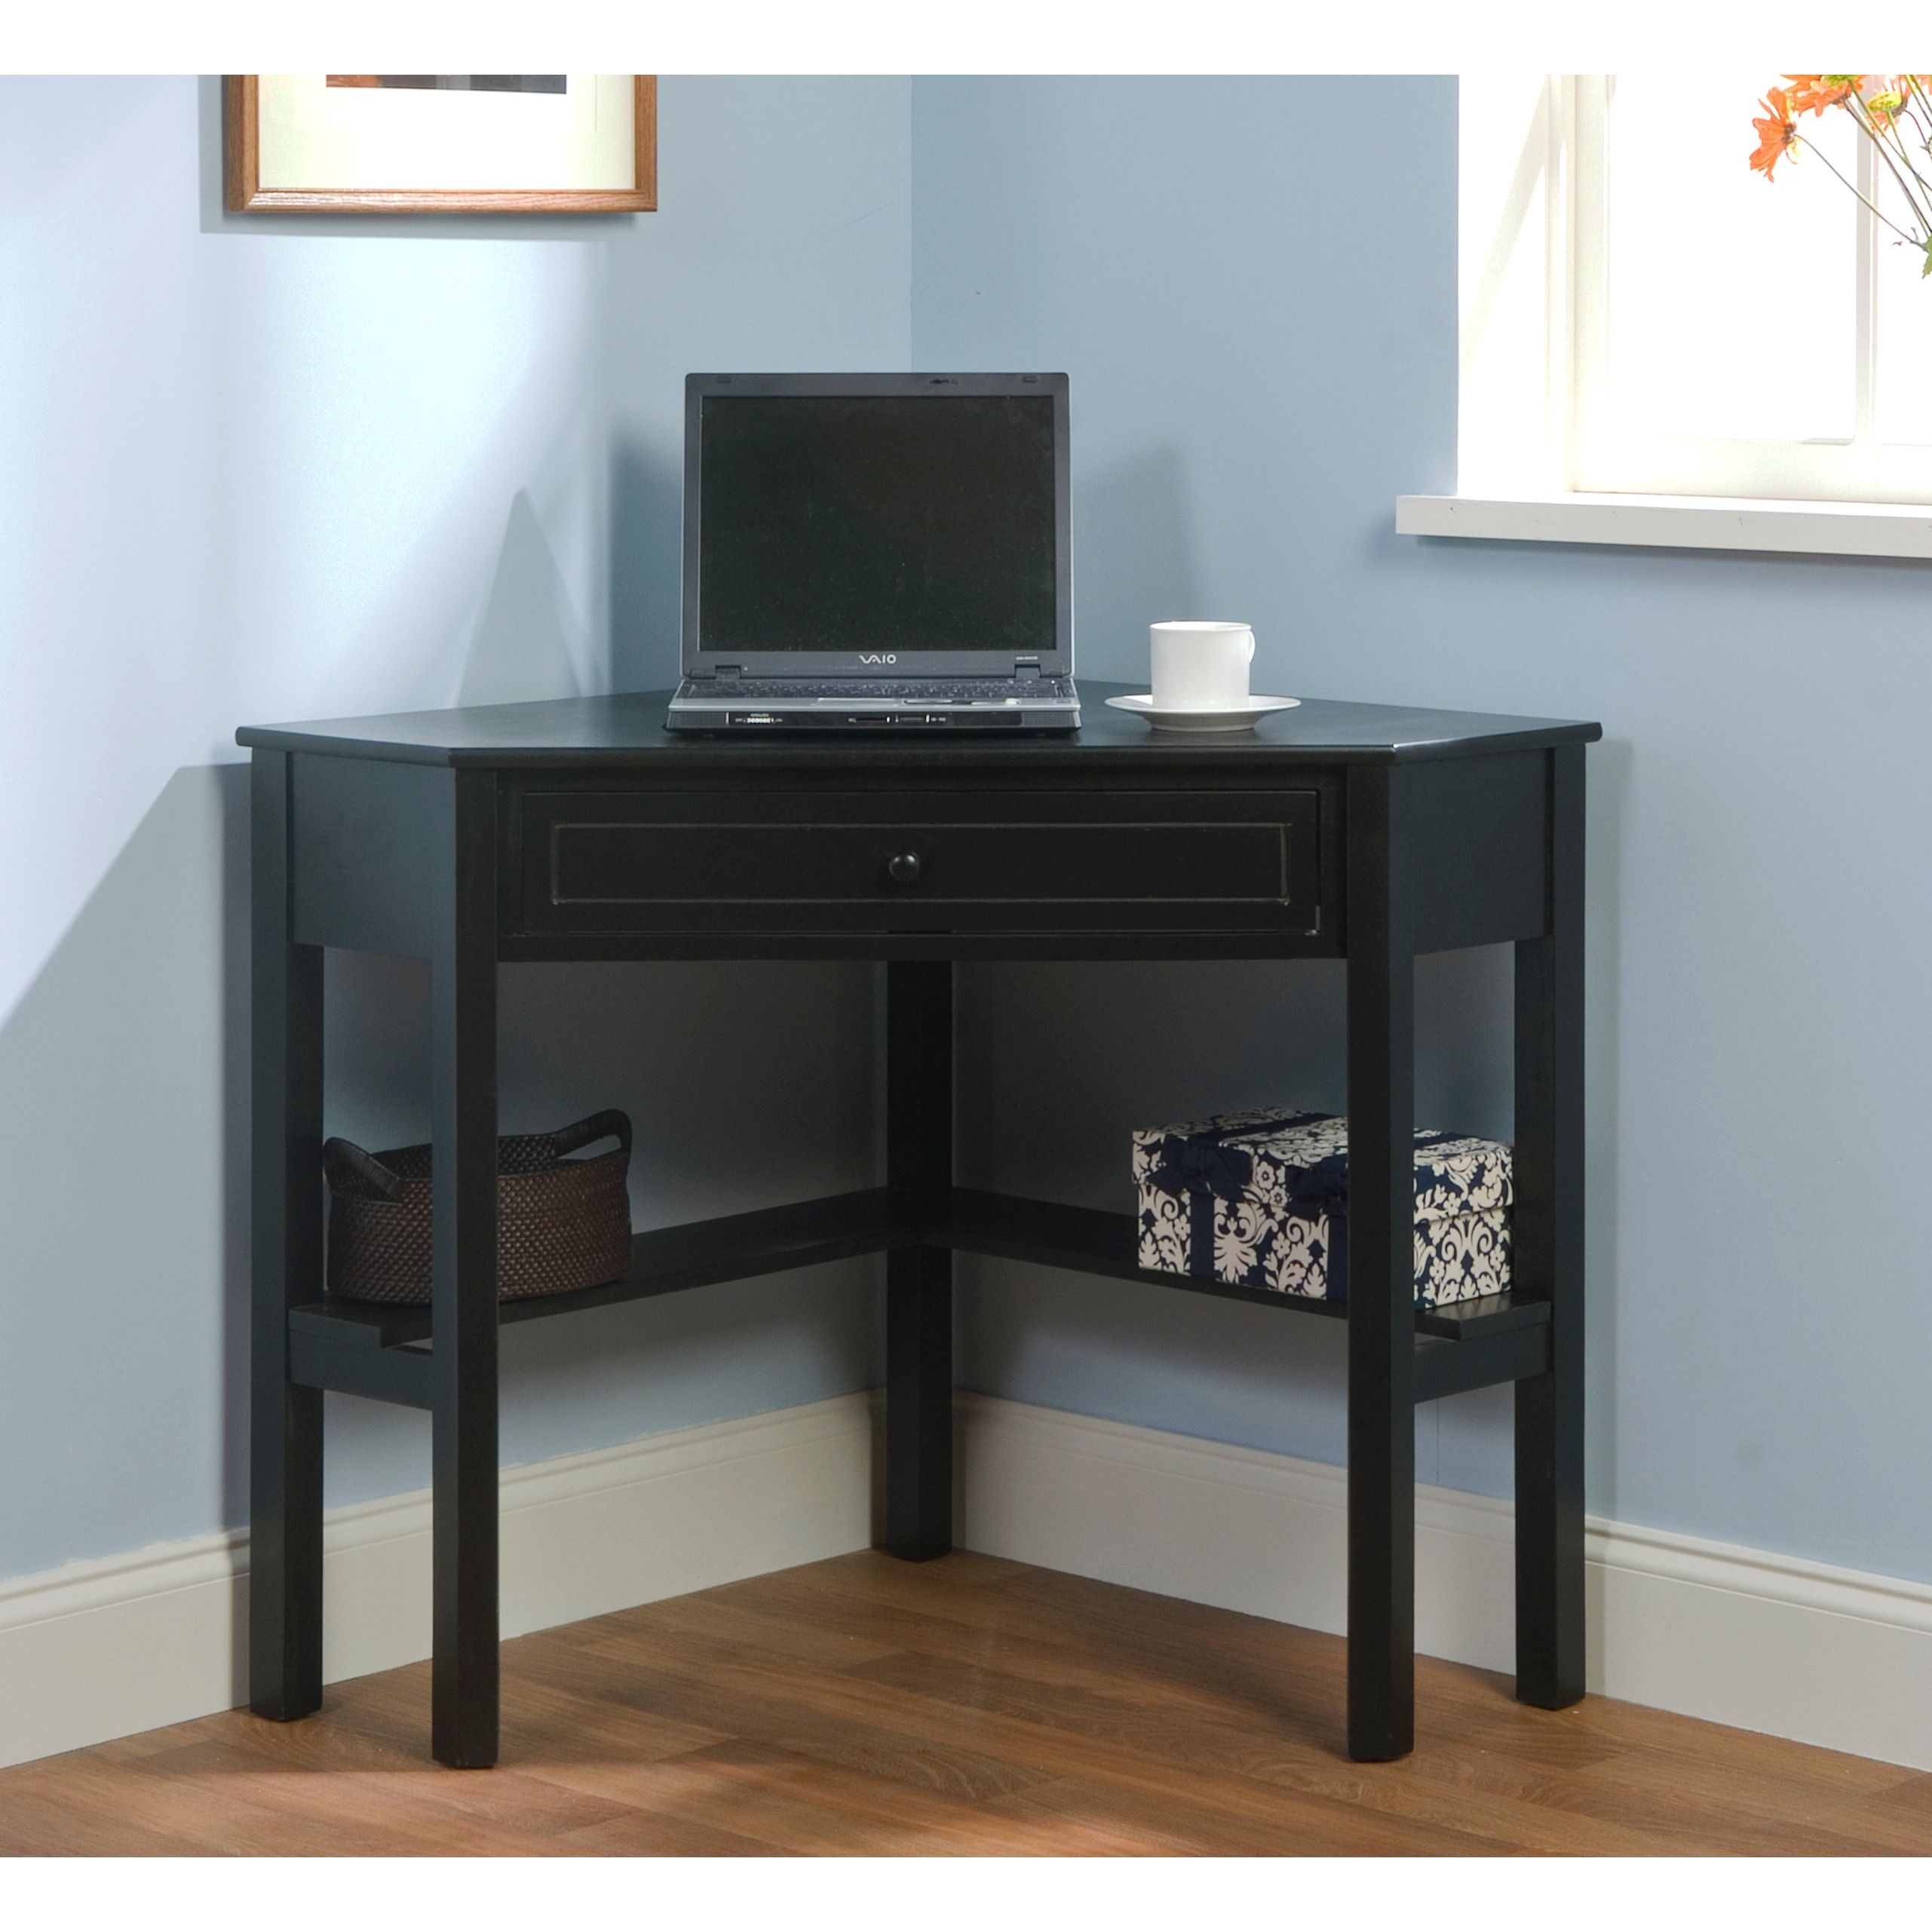 Simple Living Black Wood Corner Computer Desk With Drawer   Overstock  Shopping   Great Deals On